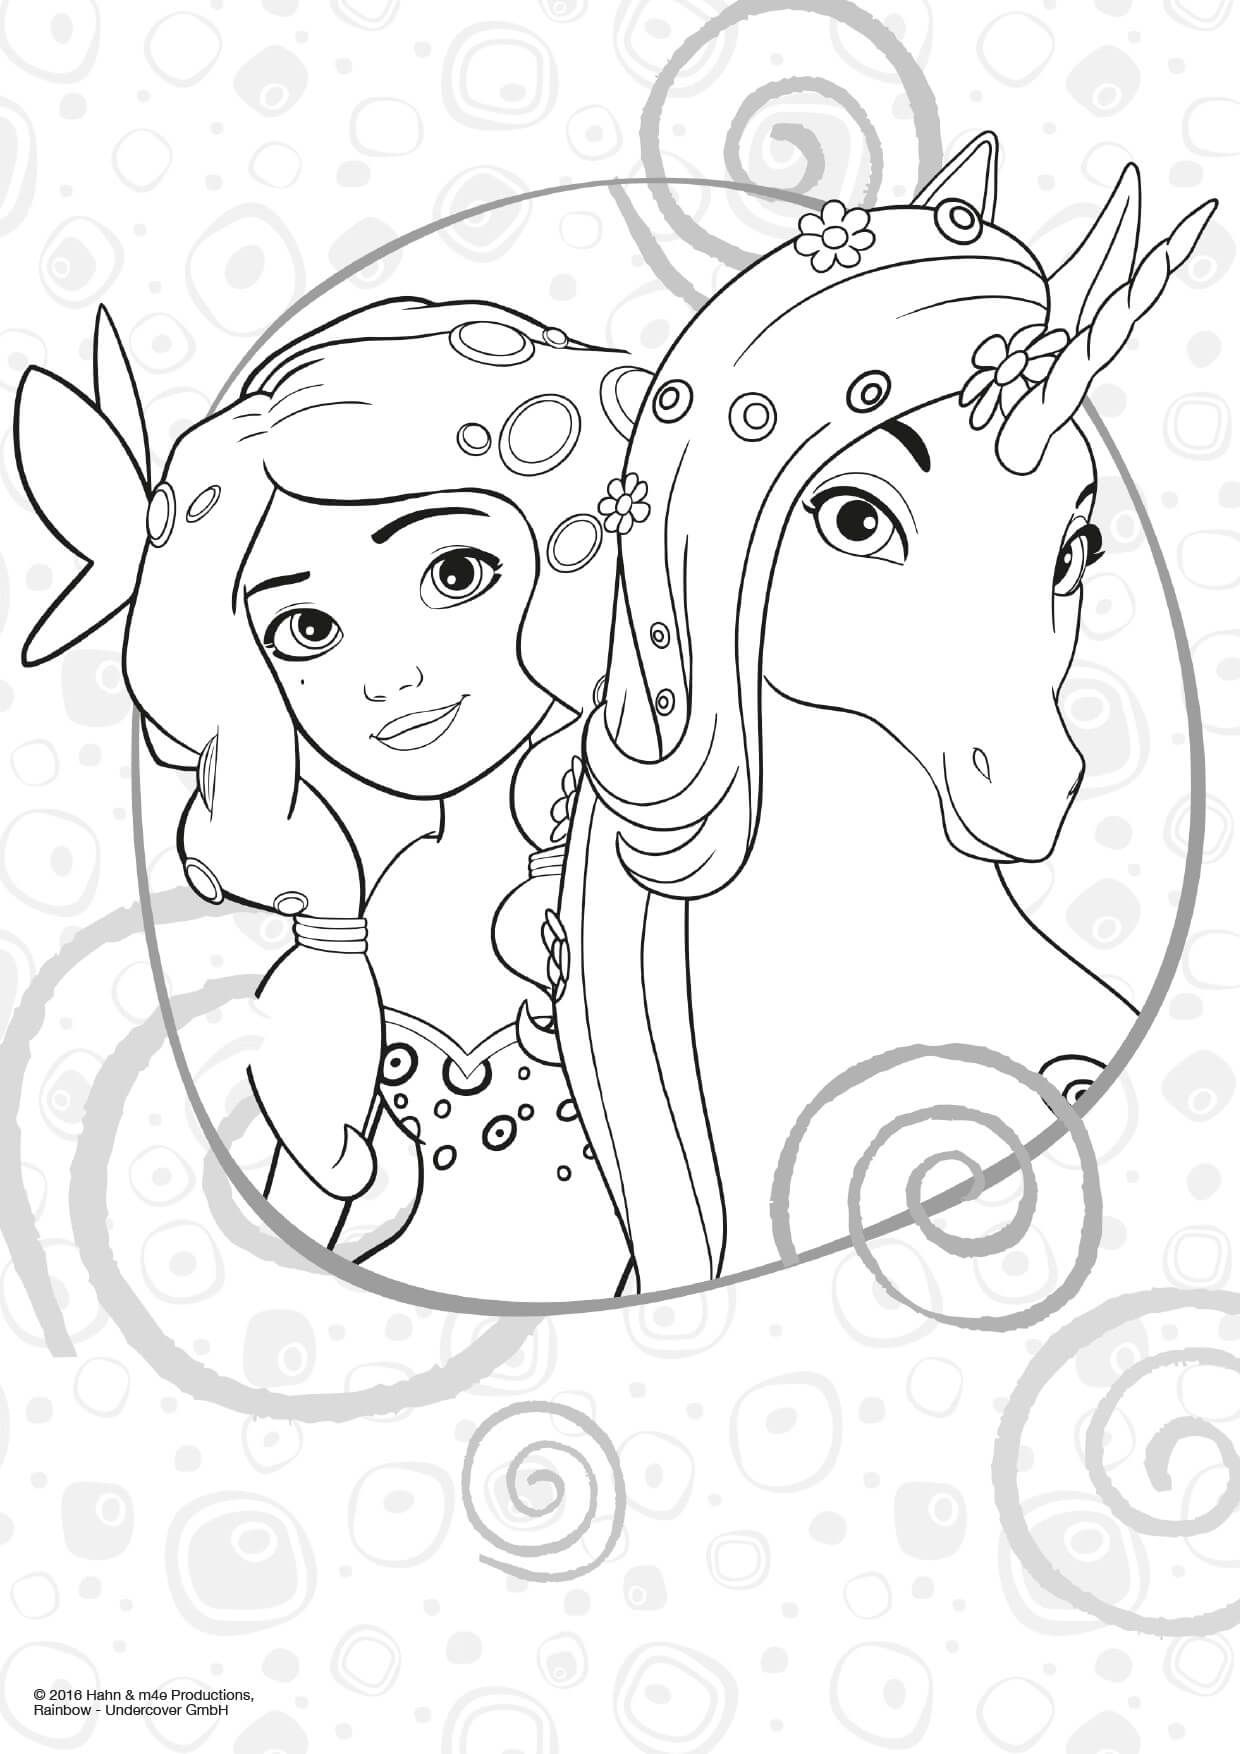 Pin By Anja Kronshage Goodwin On Coloring Picture Unicorn Coloring Pages Horse Coloring Pages Coloring Books